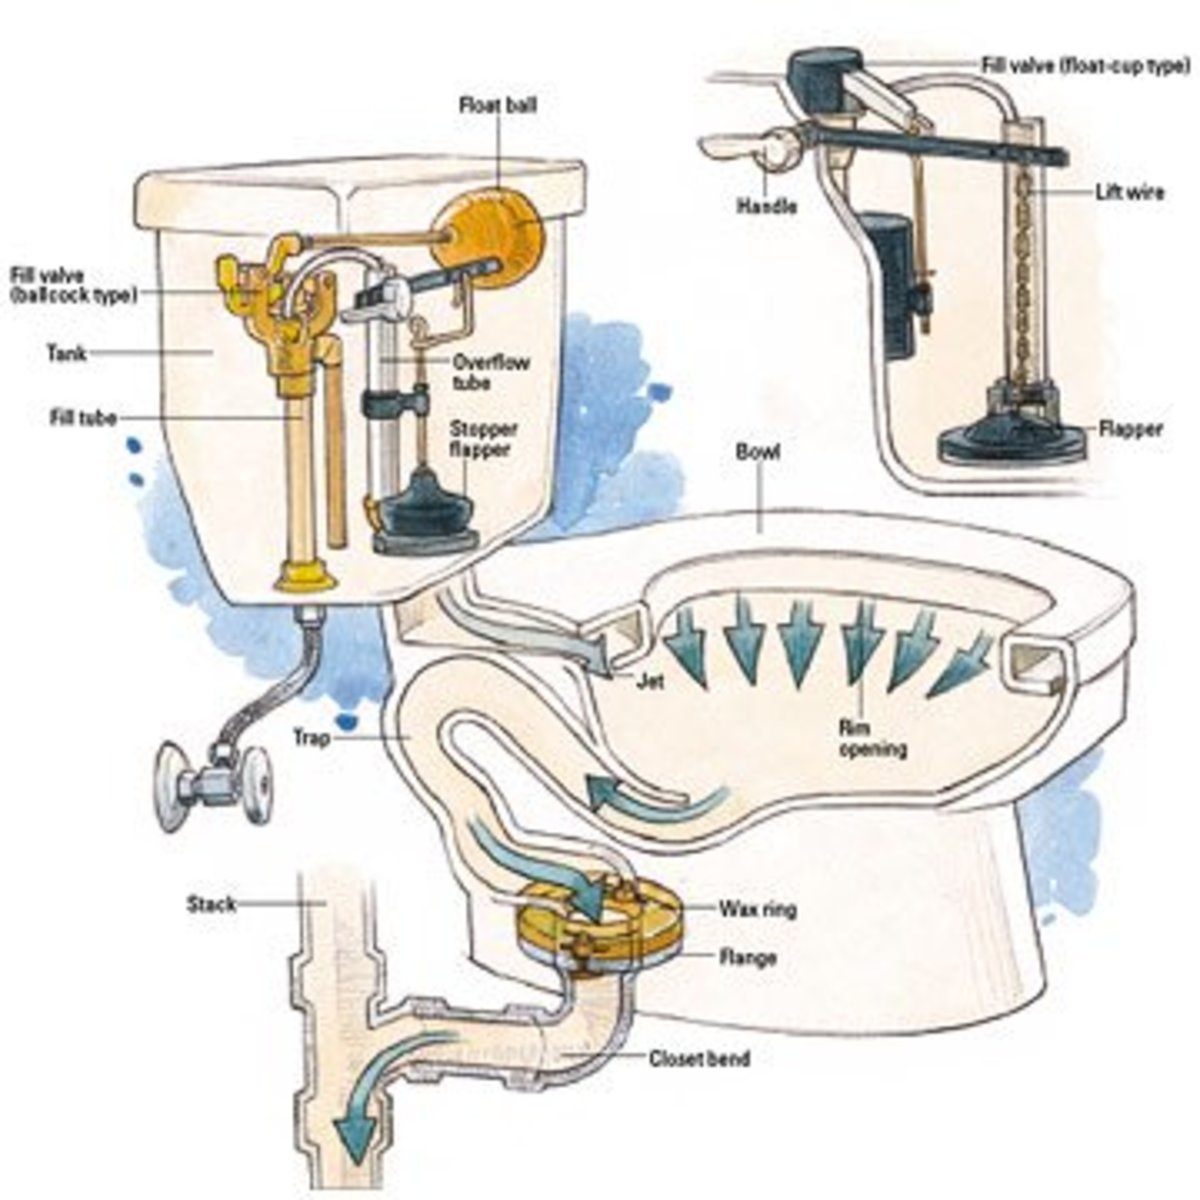 Common Toilet Troubles and How to Address Them